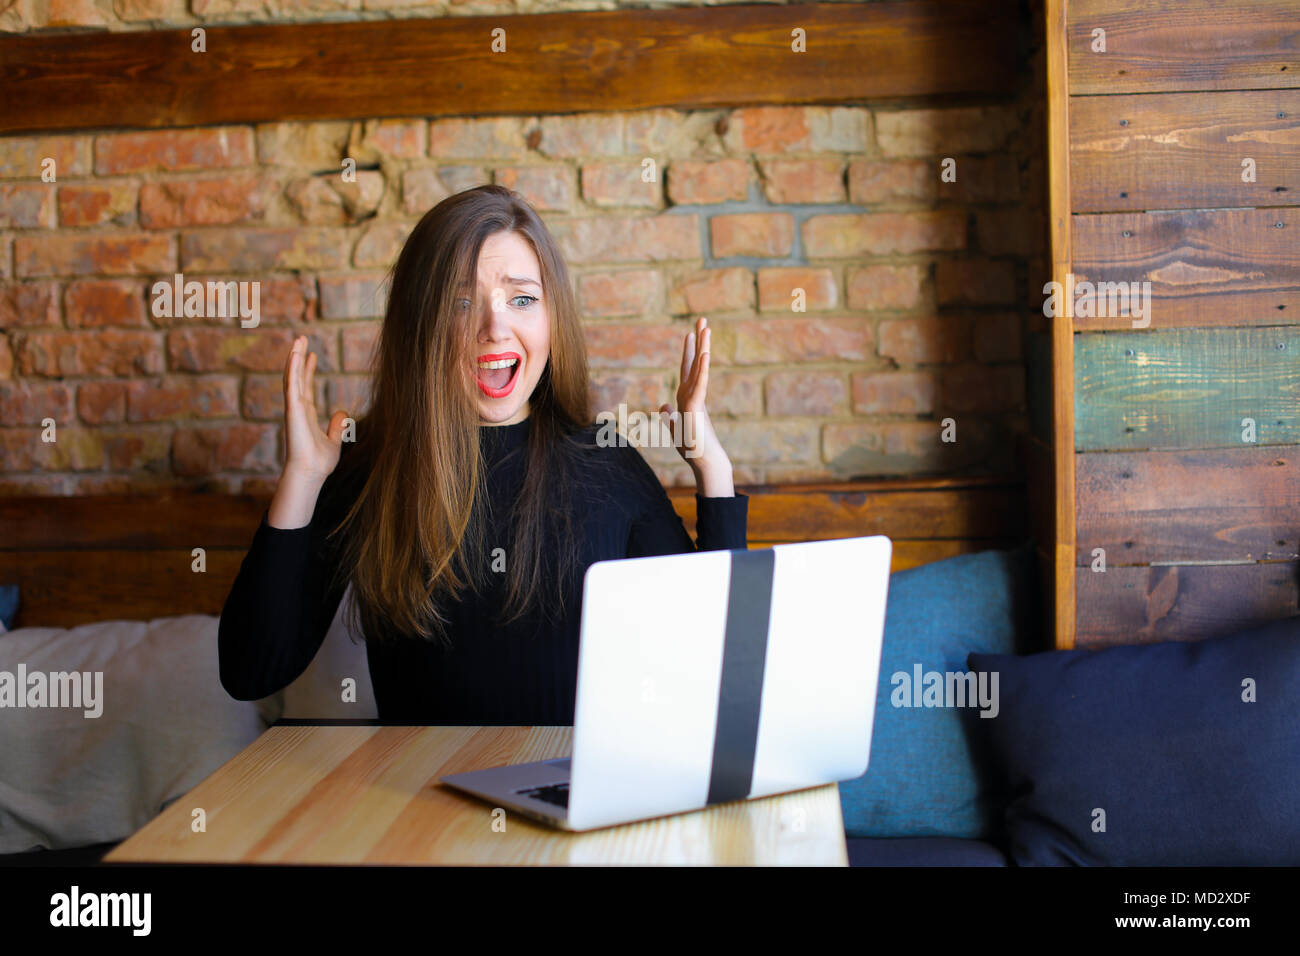 Shocked female person using laptop and sitting at cafe. - Stock Image